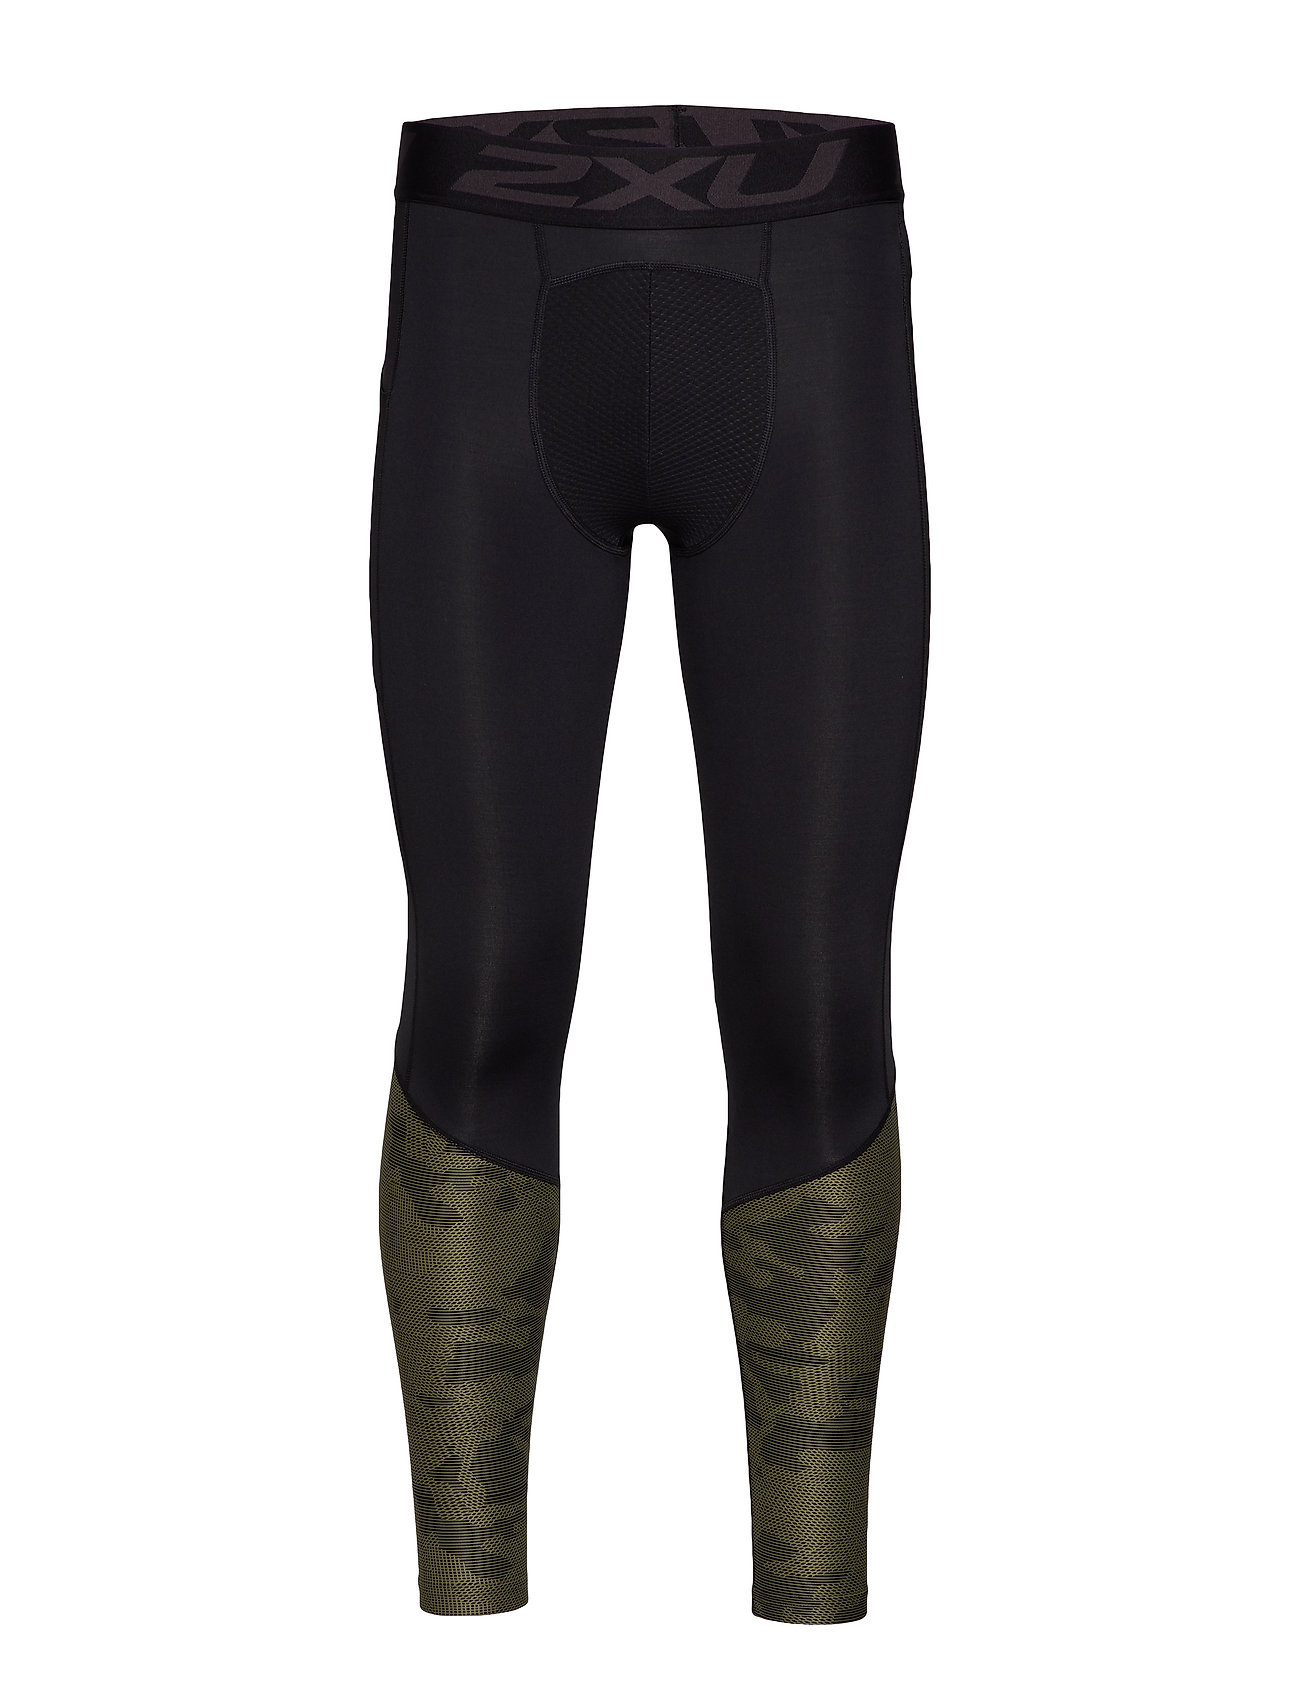 2XU Accel Comp Tight w Storage-M - BLACK/LINEAR CAMO KHAKI